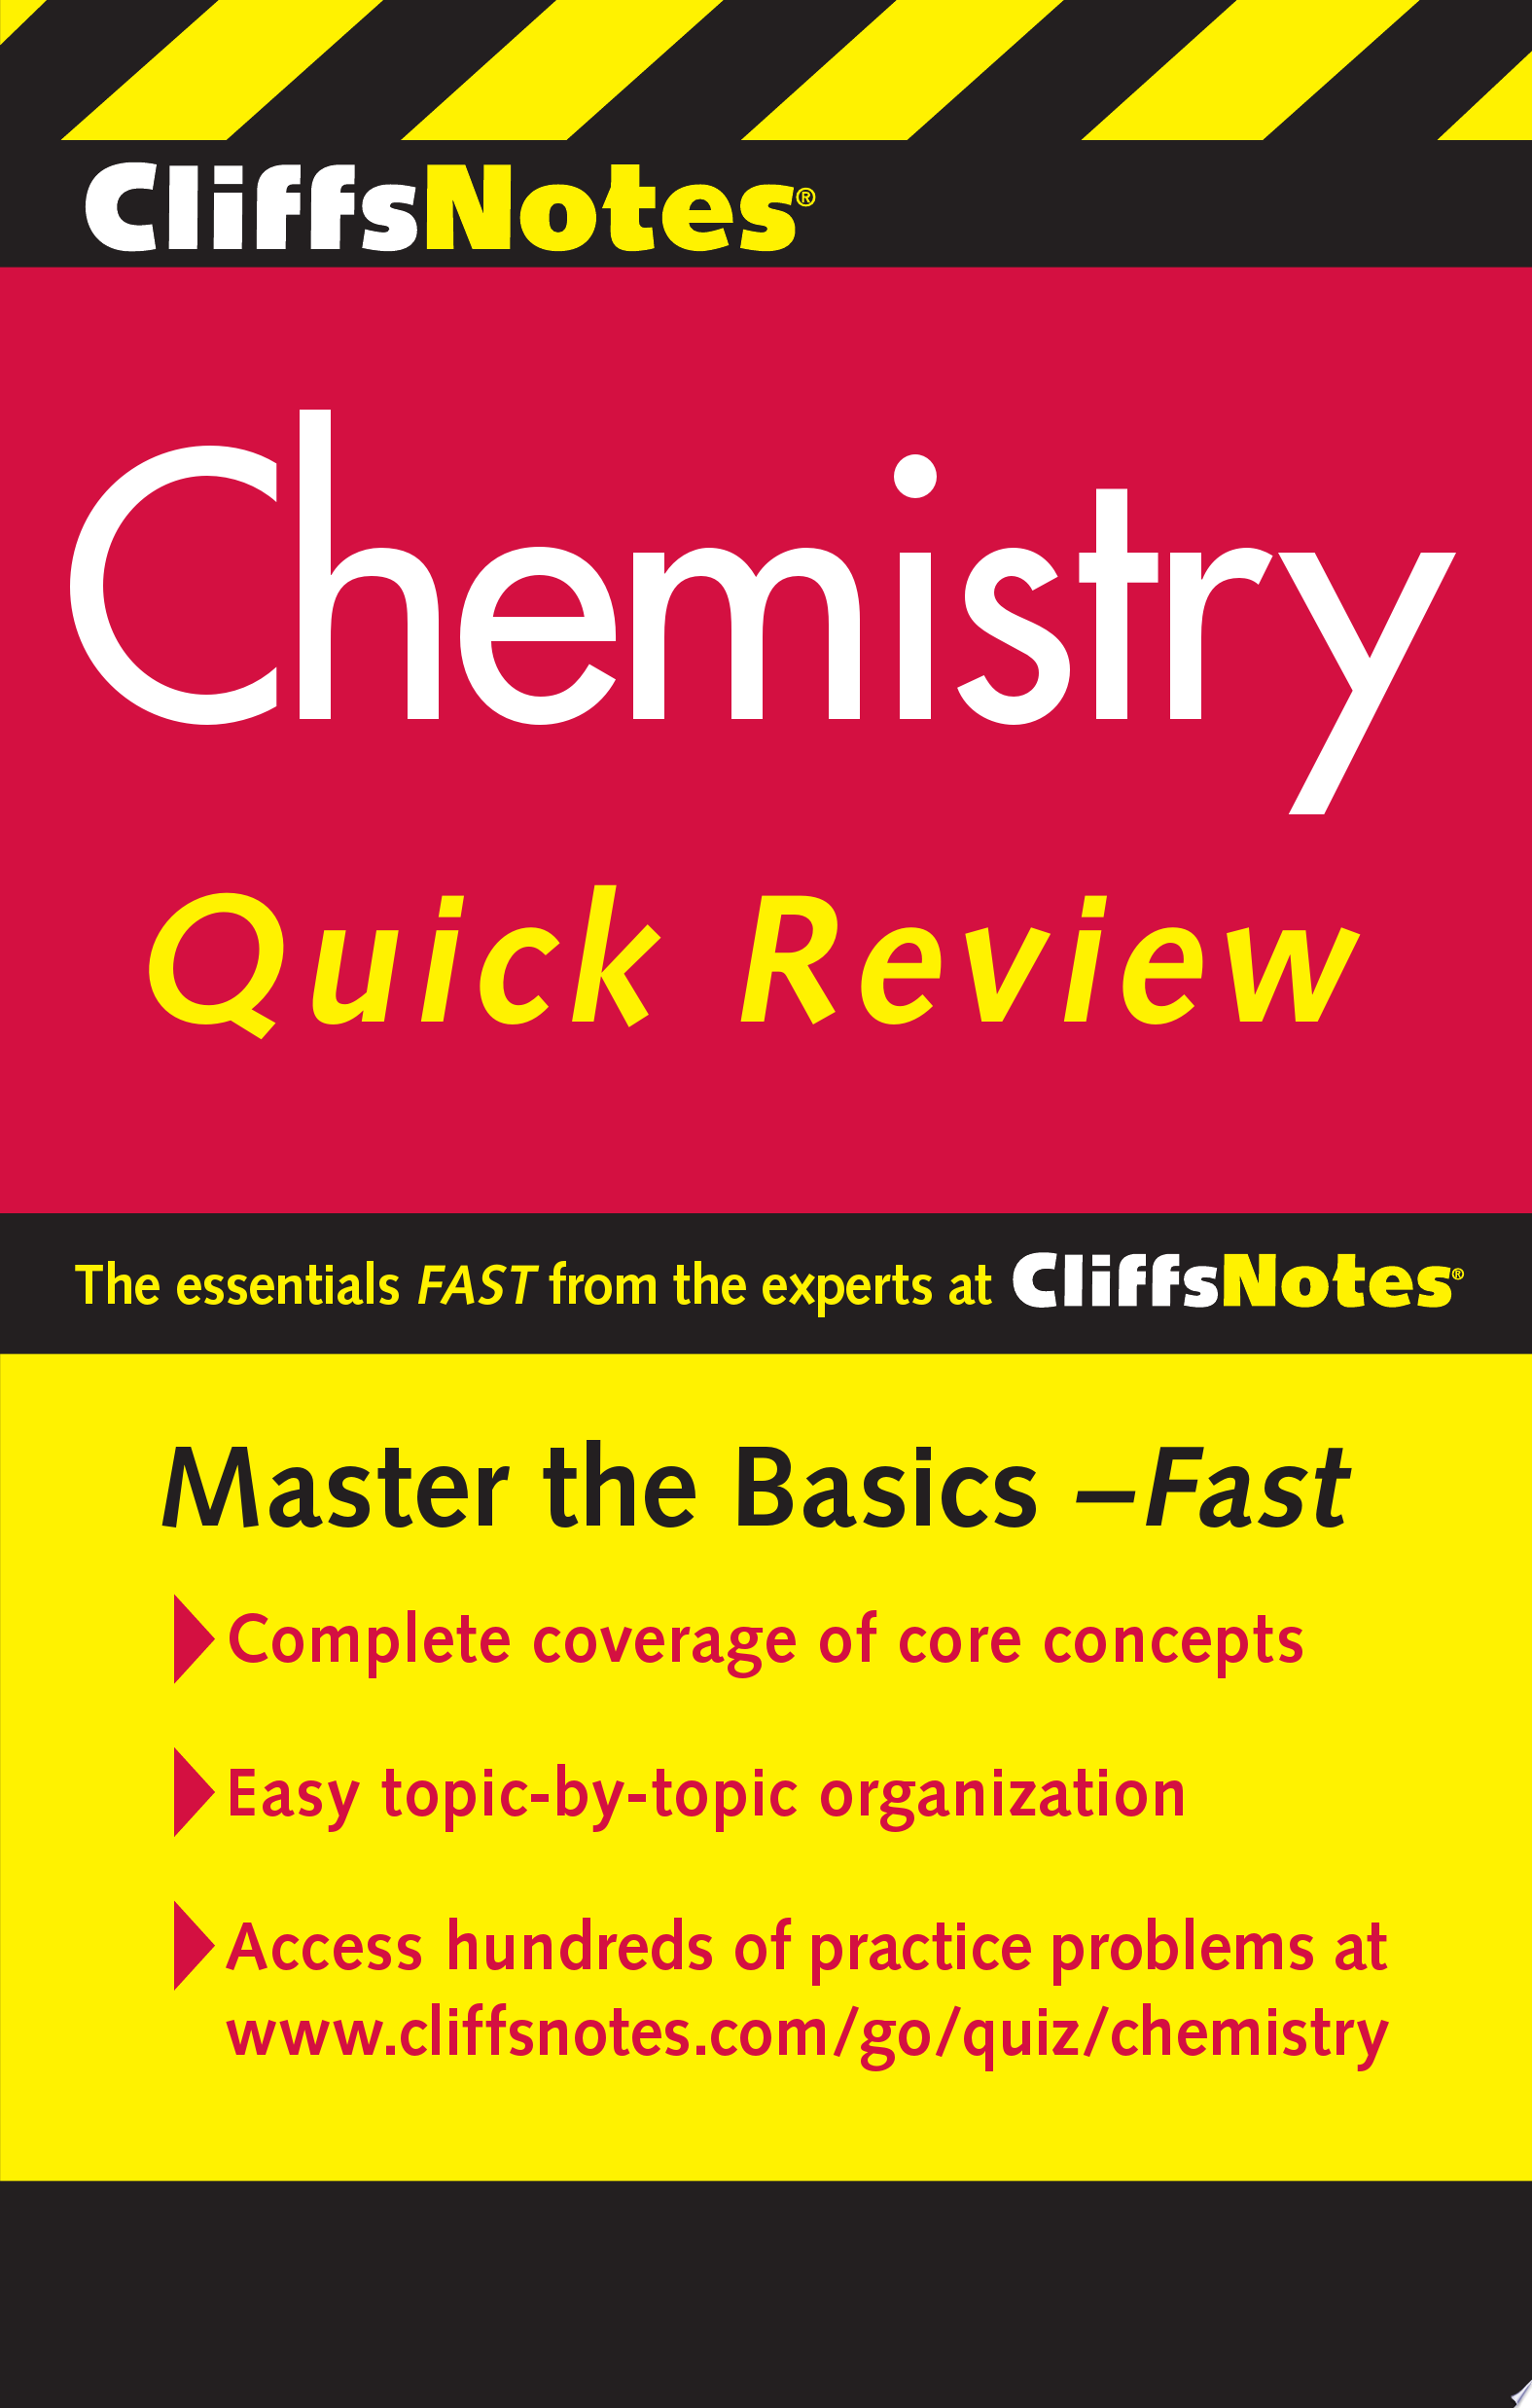 CliffsNotes Chemistry Quick Review  2nd Edition